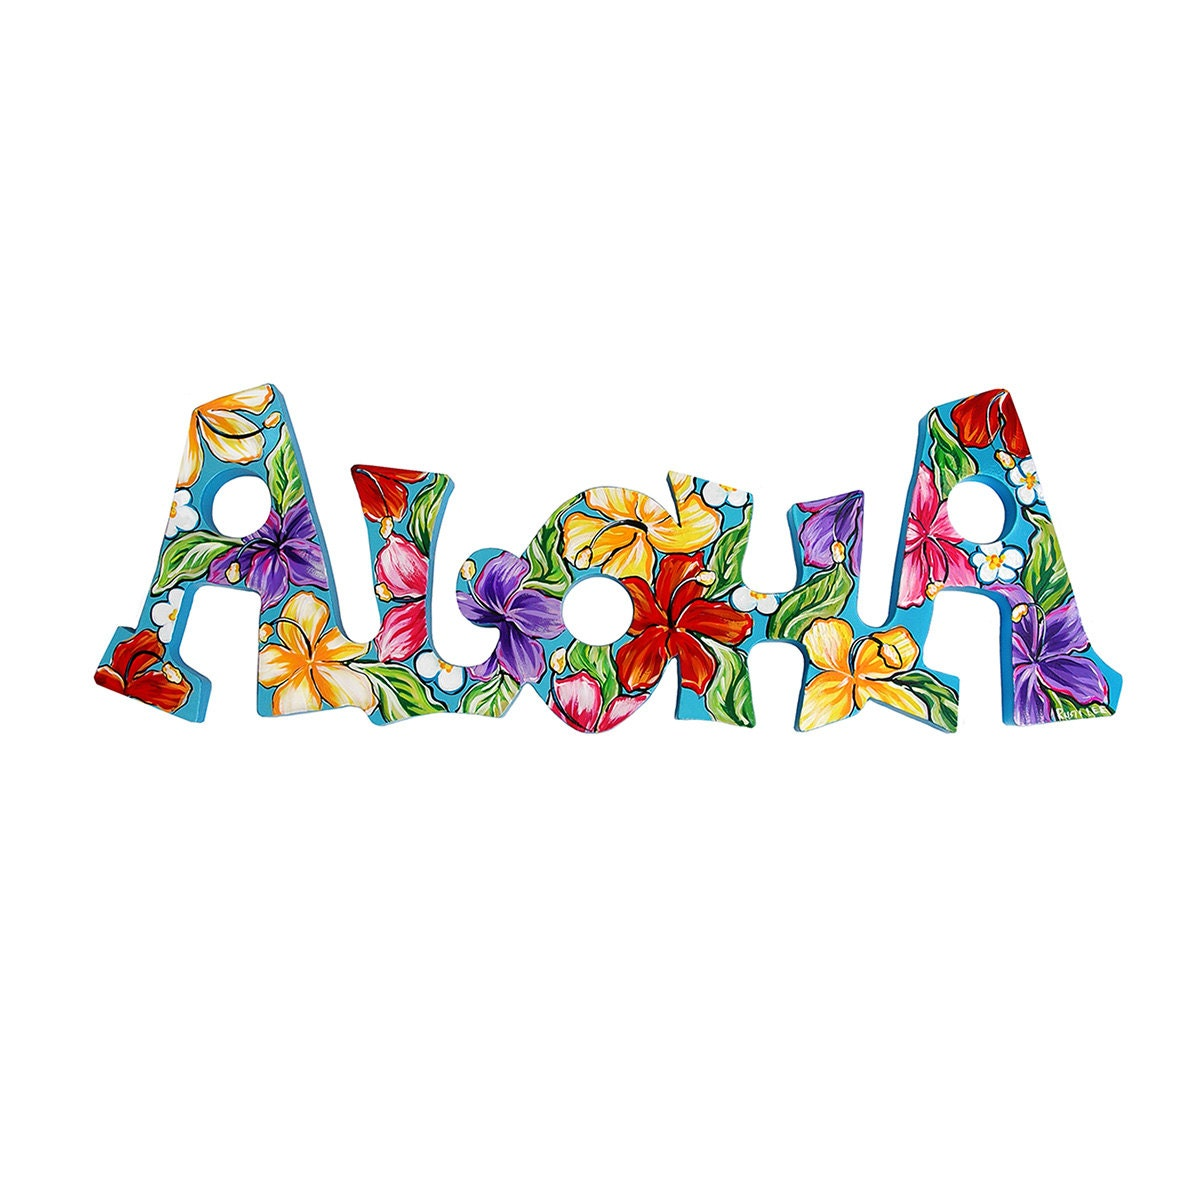 Personalized 8x24 Hawaiian Themed Aloha Sign